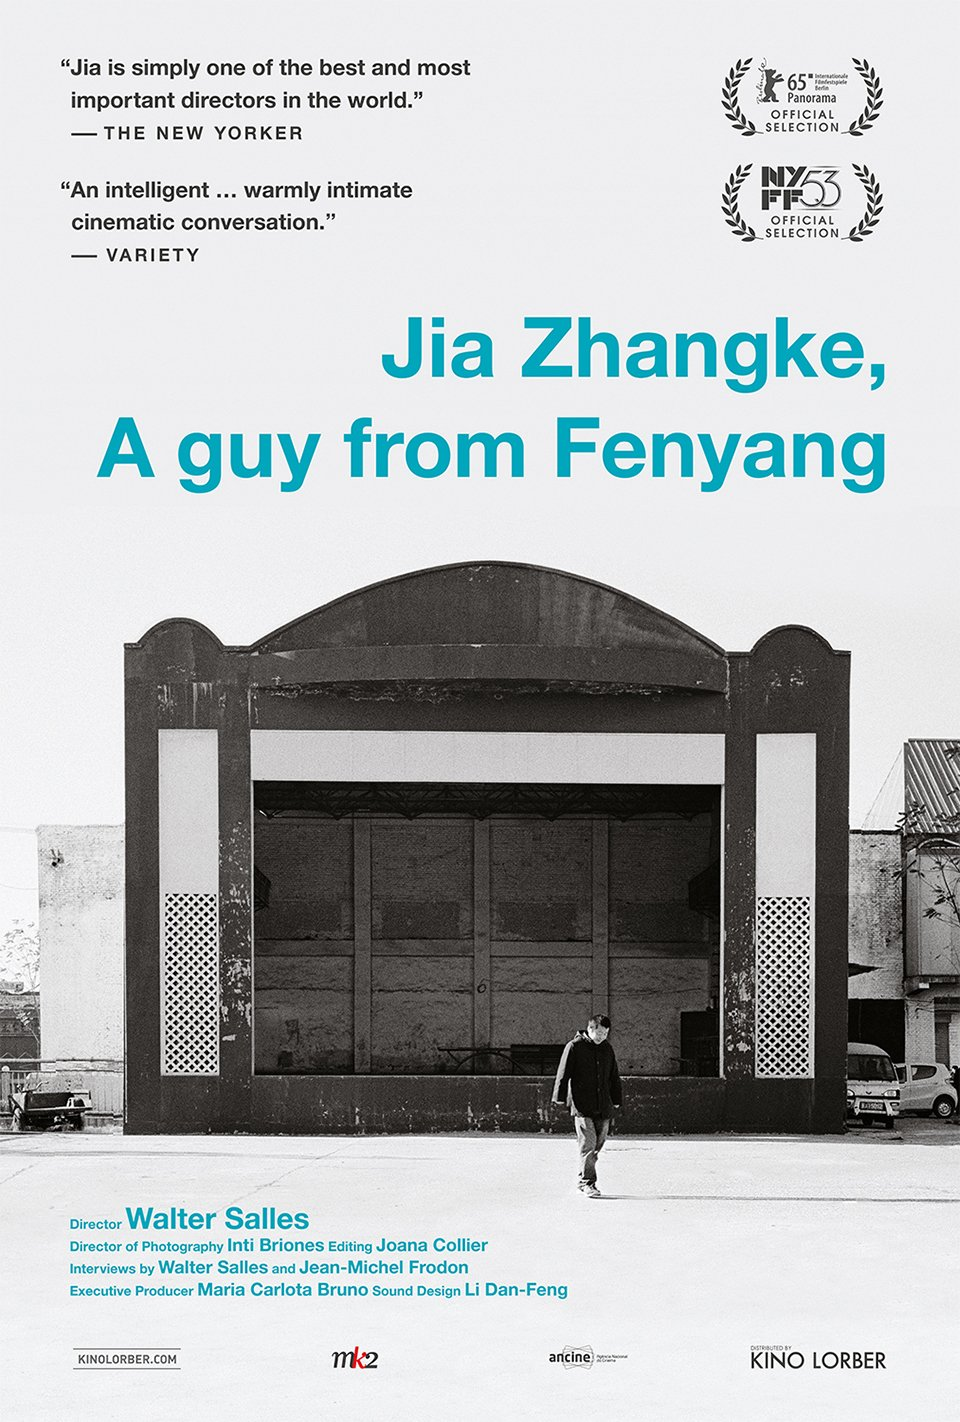 Jia Zhangke, A Guy from Fenyang (Teaser)